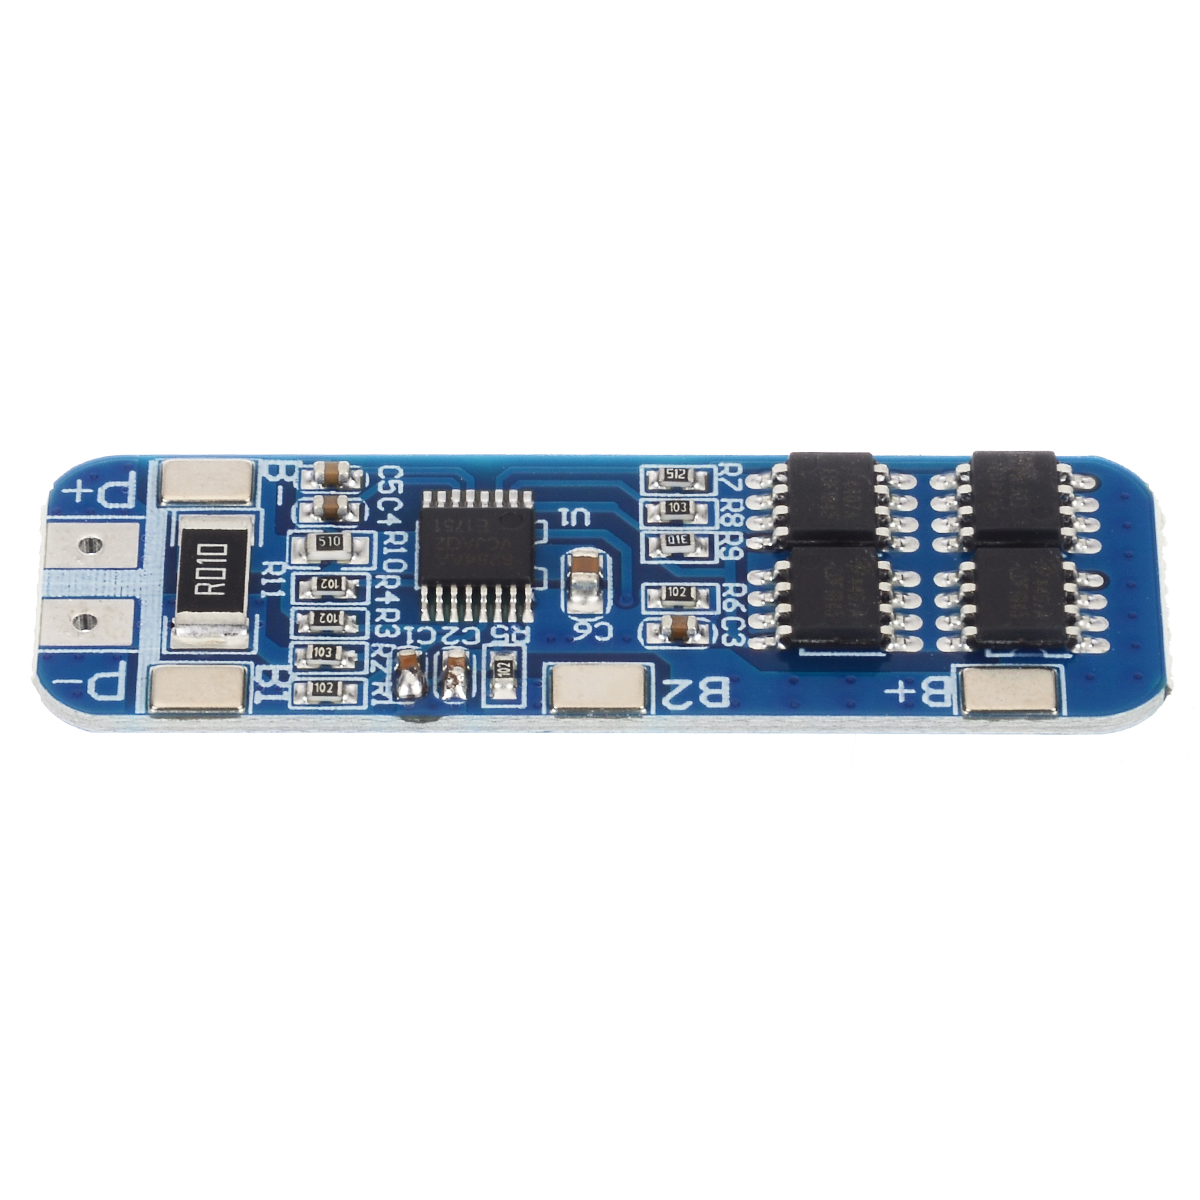 1pc Protection Board Module Circuit Breakers 3S 12V 18650 10A BMS Charger Li-ion Lithium Battery Protection Board